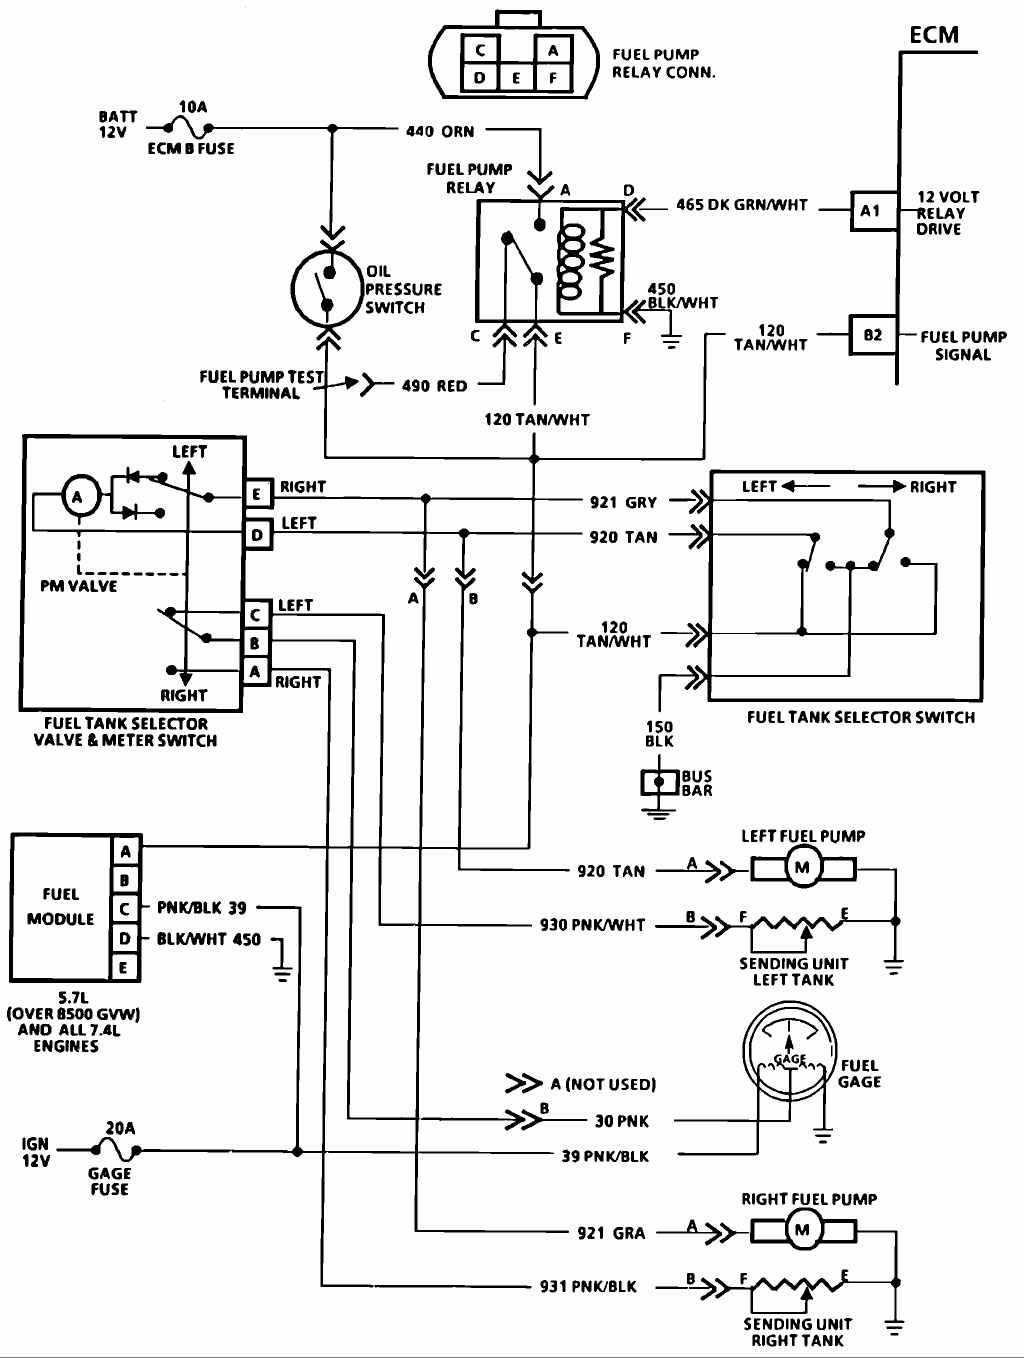 images?q=tbn:ANd9GcQh_l3eQ5xwiPy07kGEXjmjgmBKBRB7H2mRxCGhv1tFWg5c_mWT Delphi Fuel Pump Wiring Harness Diagram